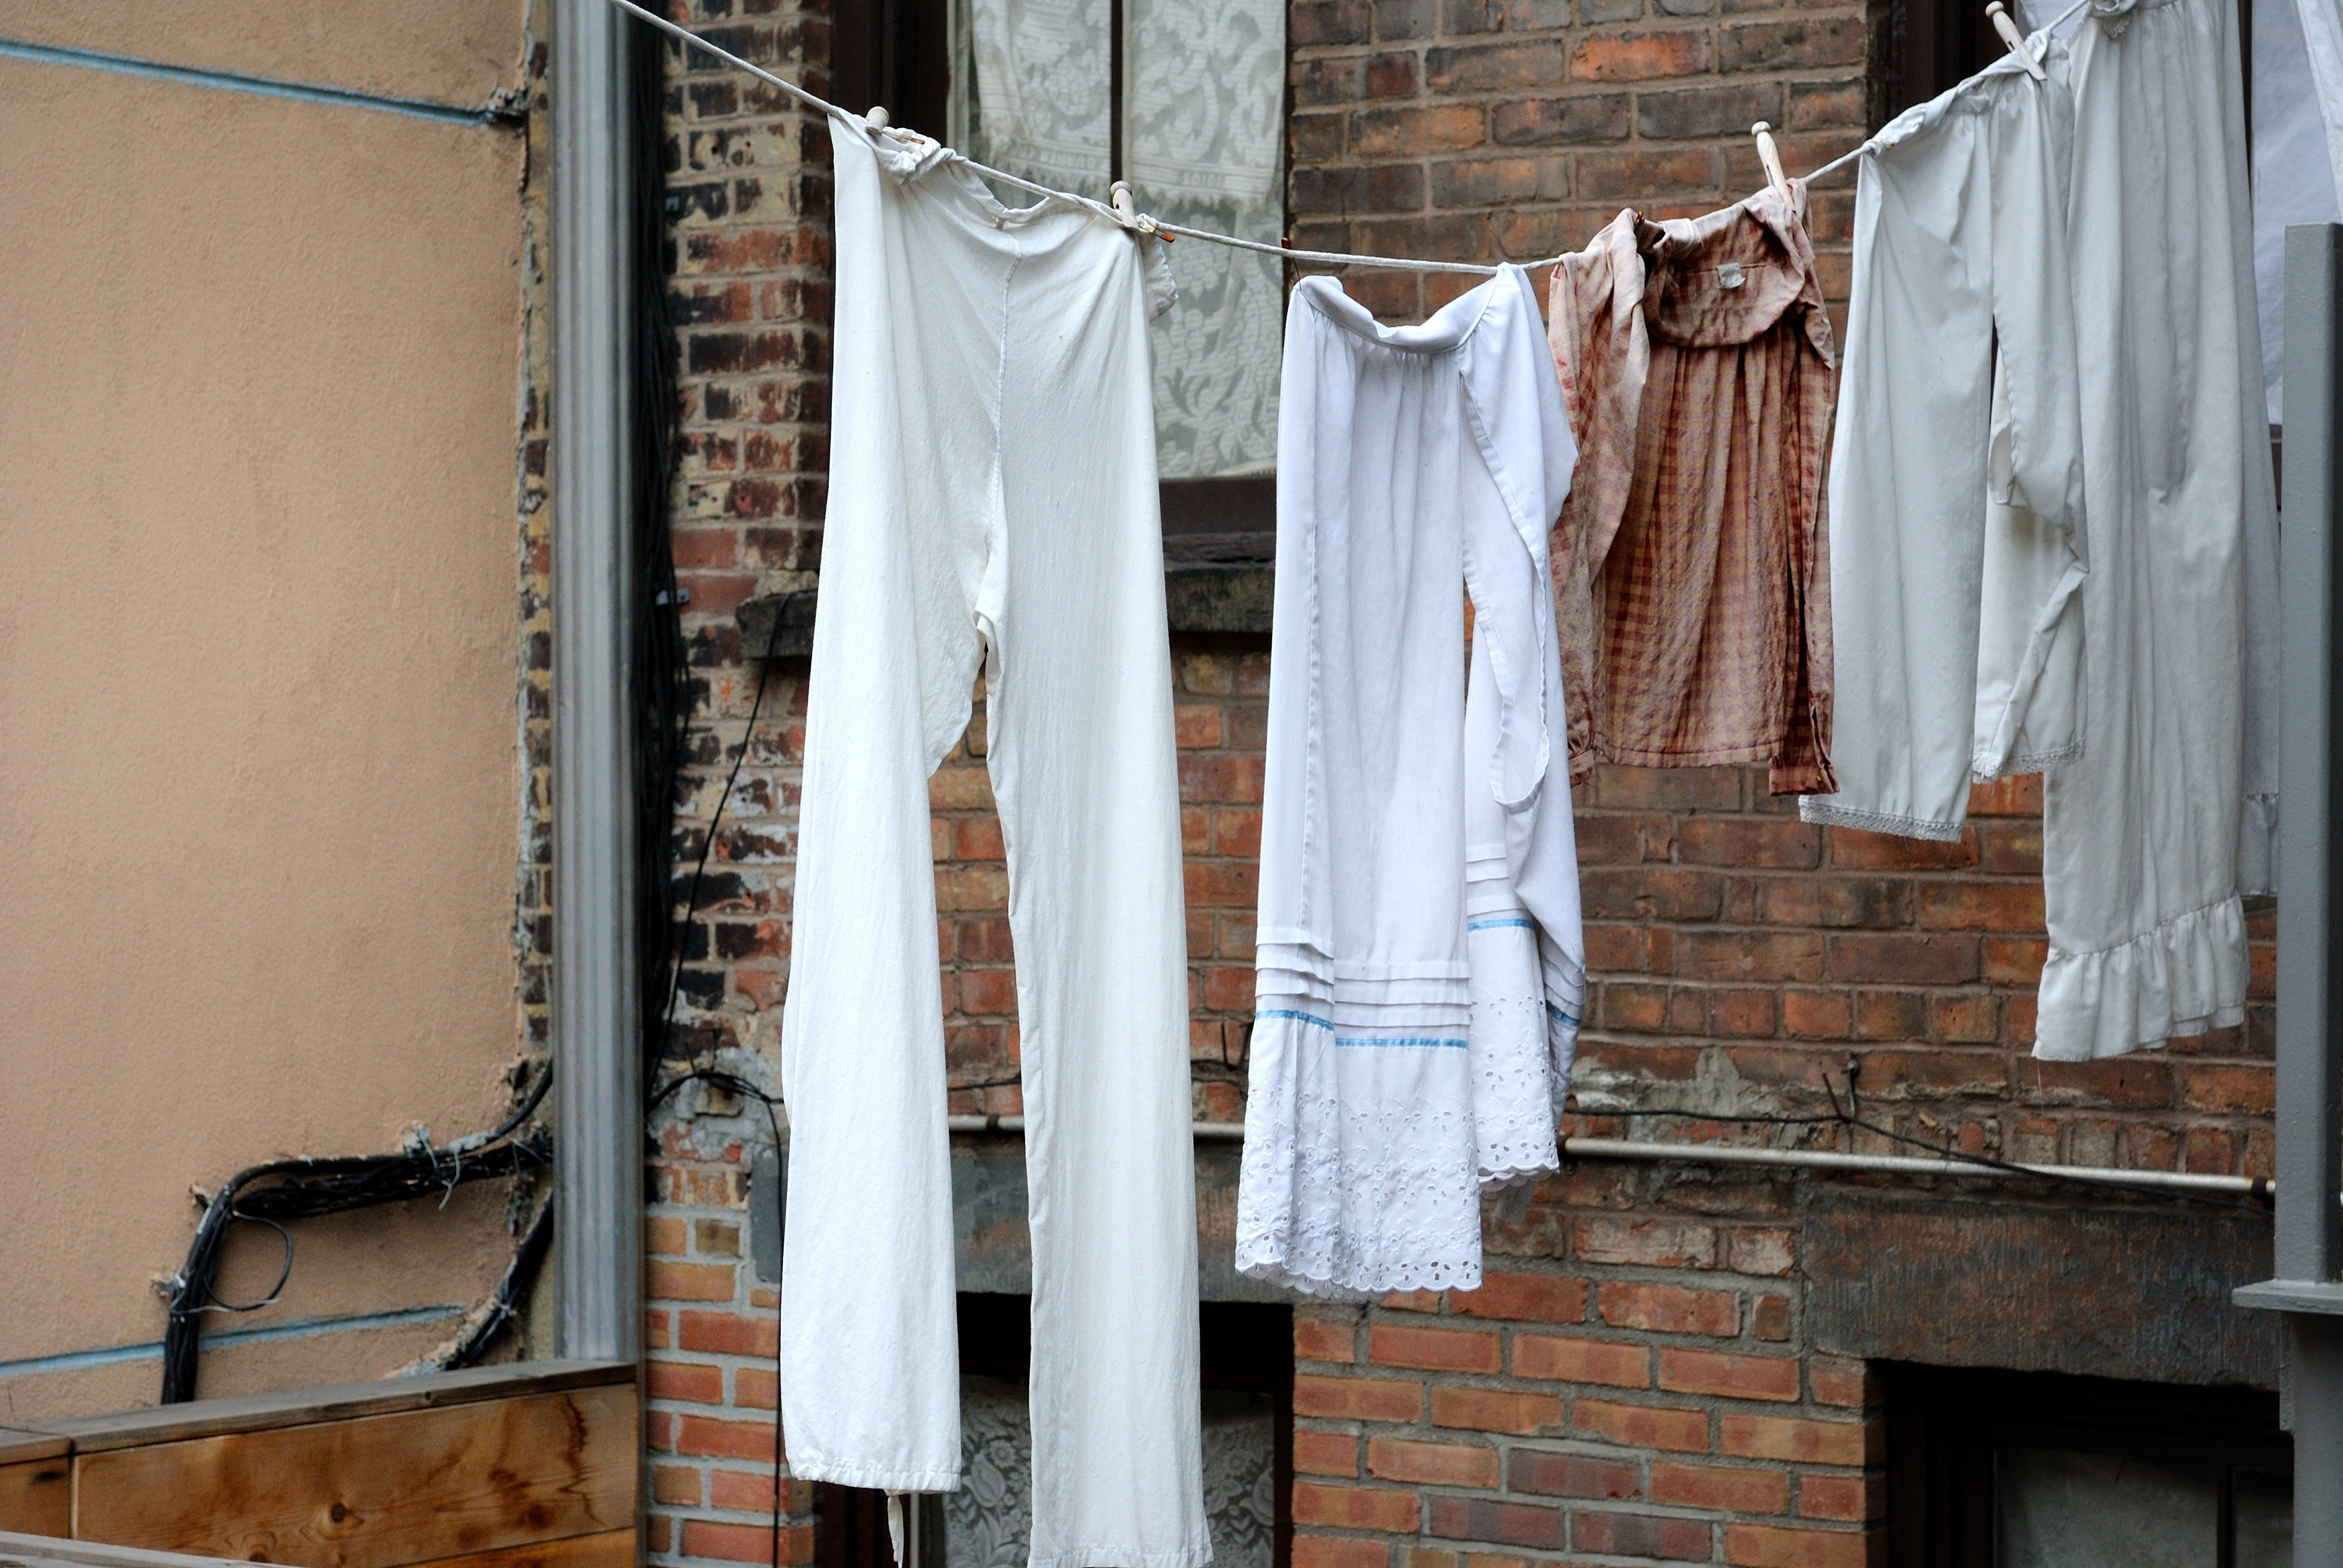 Classic scene of hanging clothing in new york city